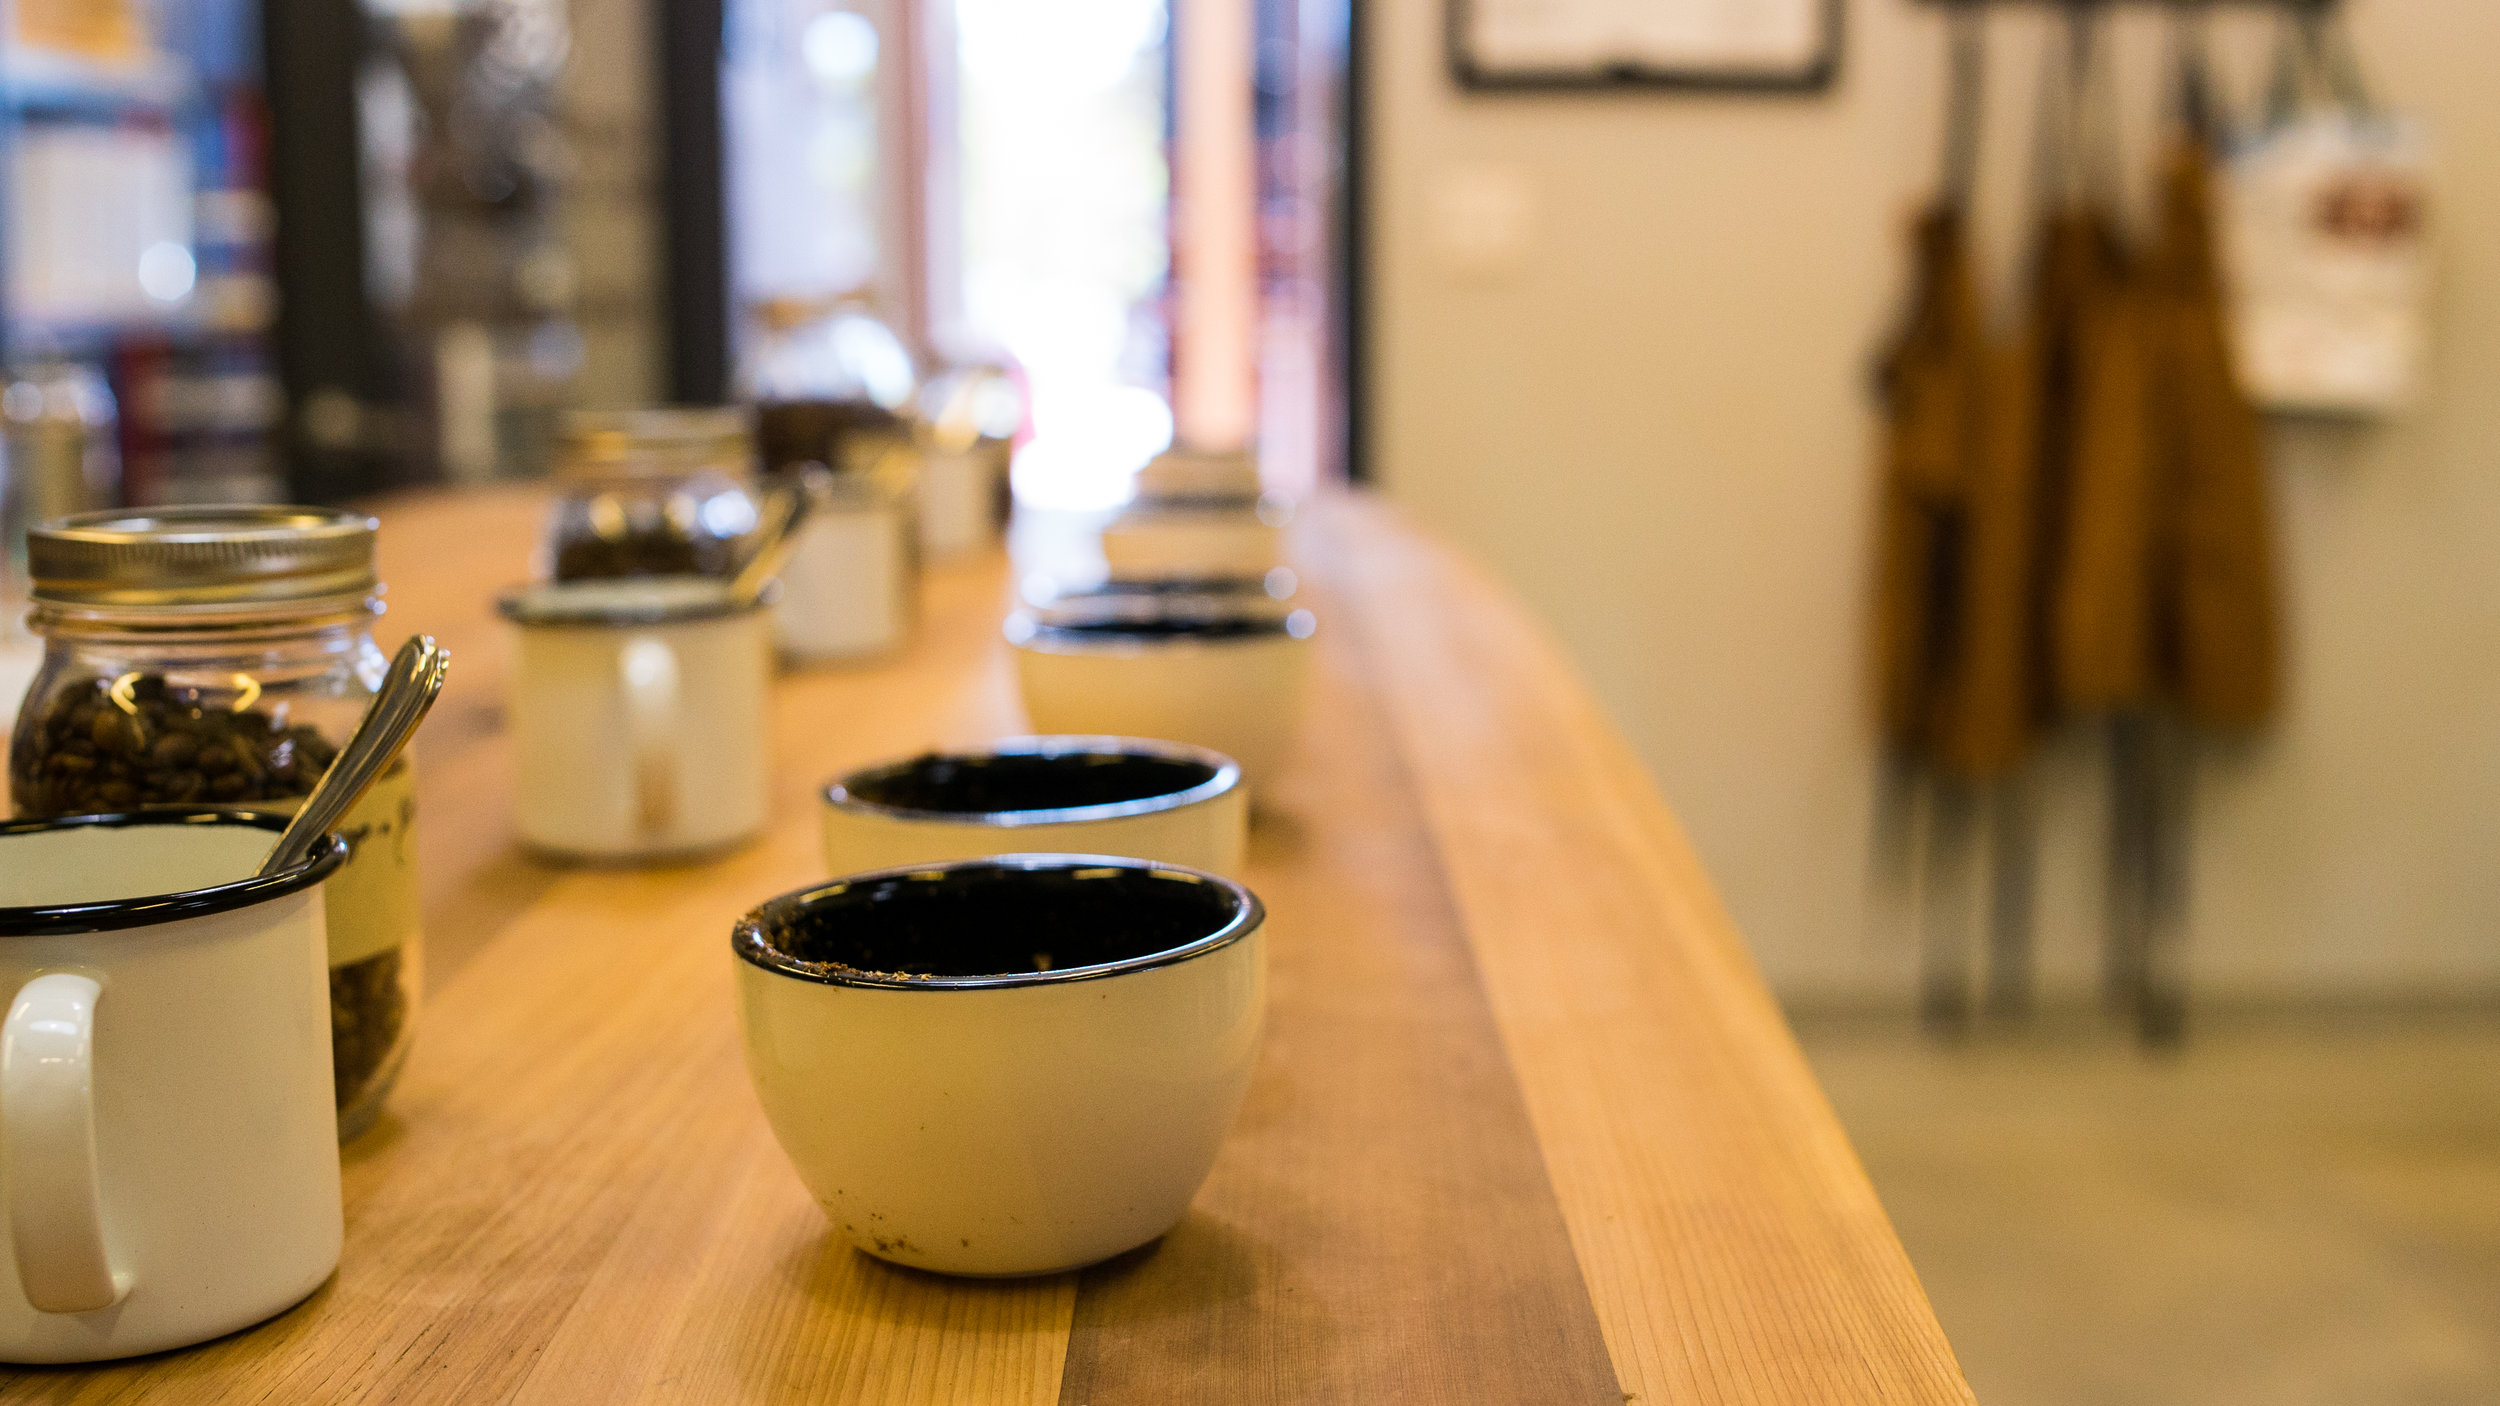 Our public cupping events often book up… so we created a separate opportunity for groups of 4-8 people to enjoy the process all to themselves! These events are great for friends & family visiting town, perfect for anyone interested in learning more about coffee, or just enjoying it.